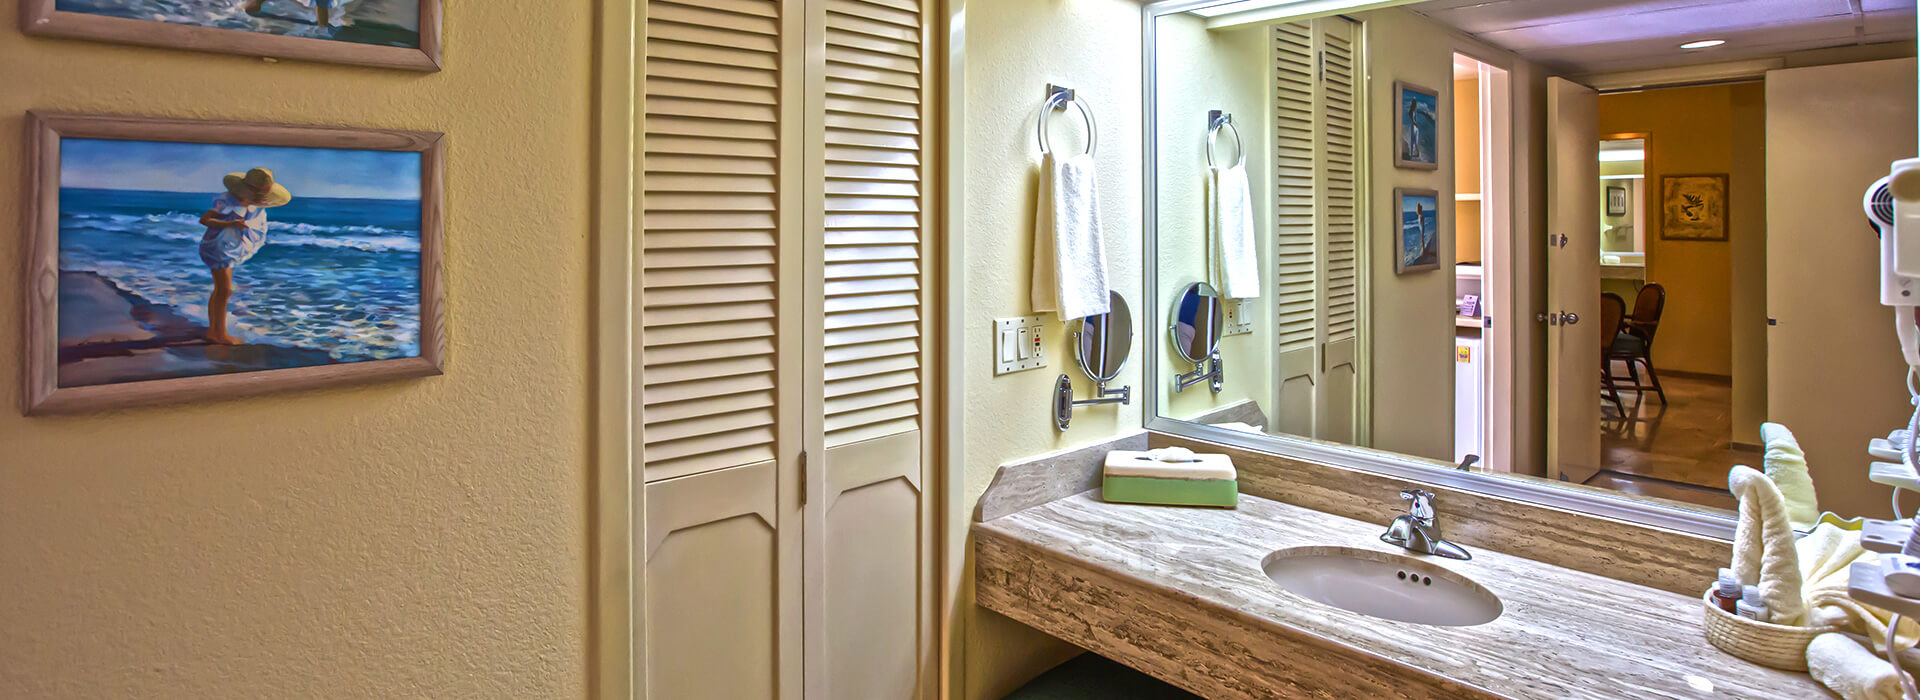 Ocean view villas with one bedroom suite luxury full bathroom in The Royal Sands All Inclusive